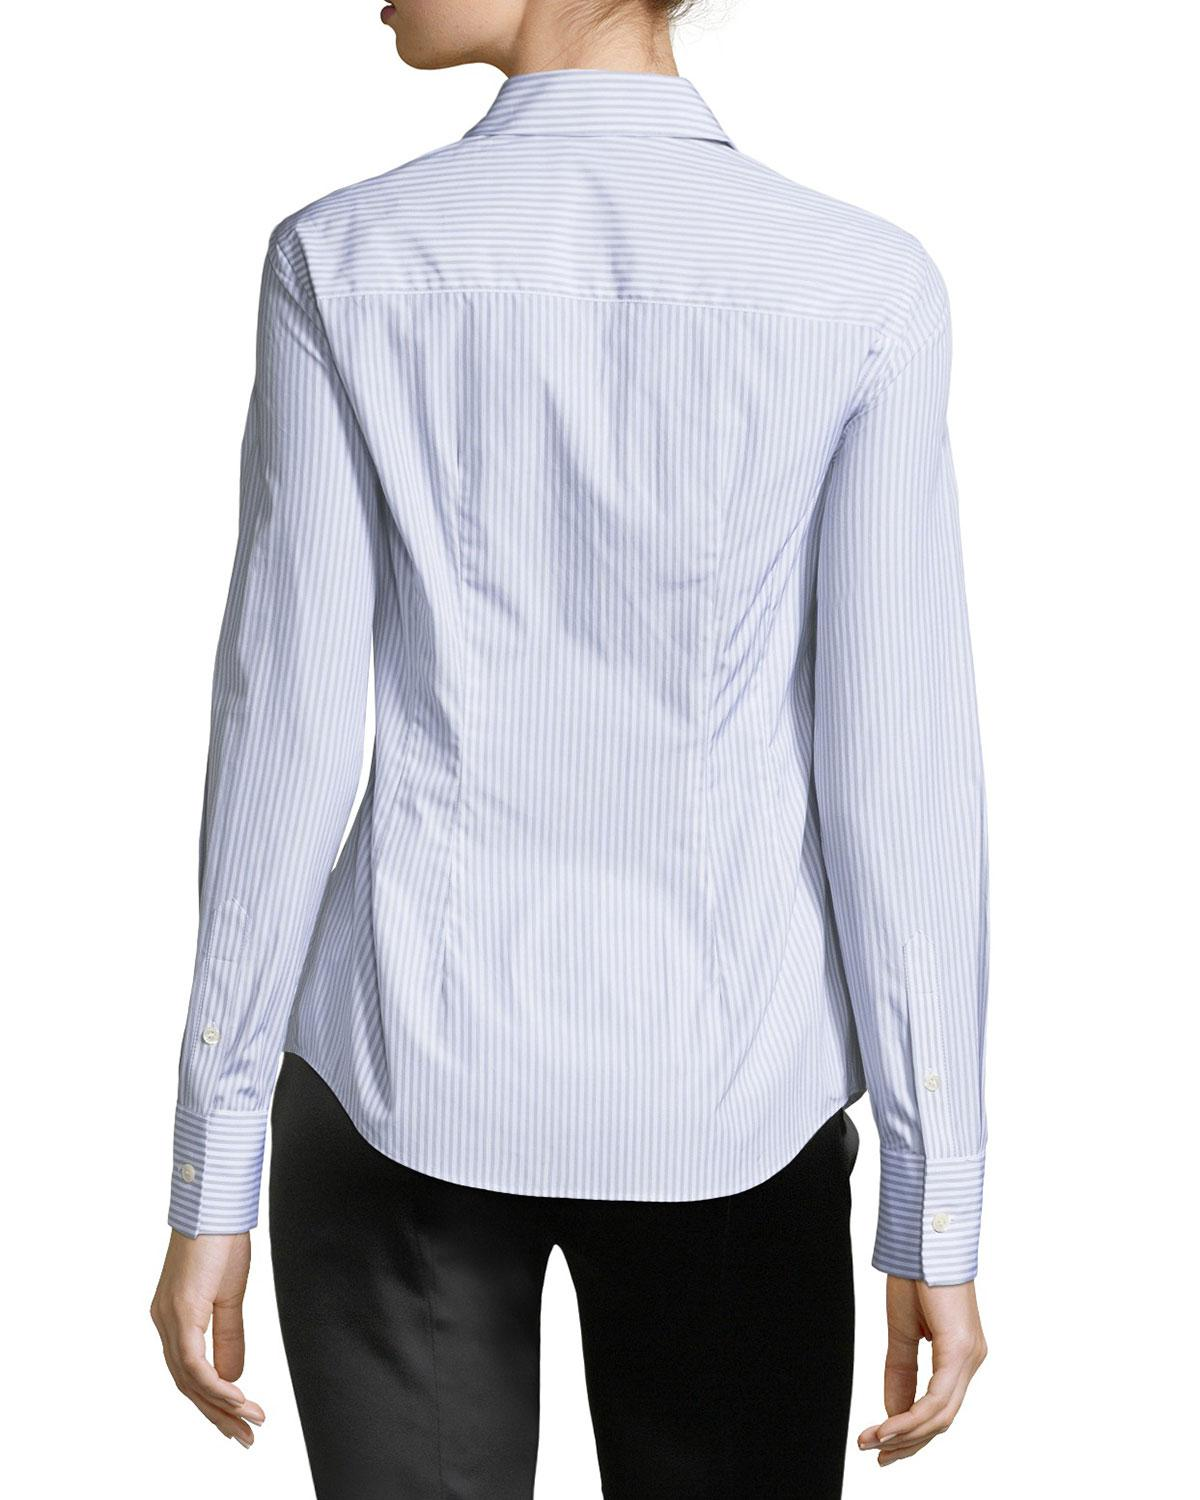 Huge Surprise Sale Huge Surprise Rebecca Minkoff Stripe-Accented Silk Top Sale With Mastercard MwhEs